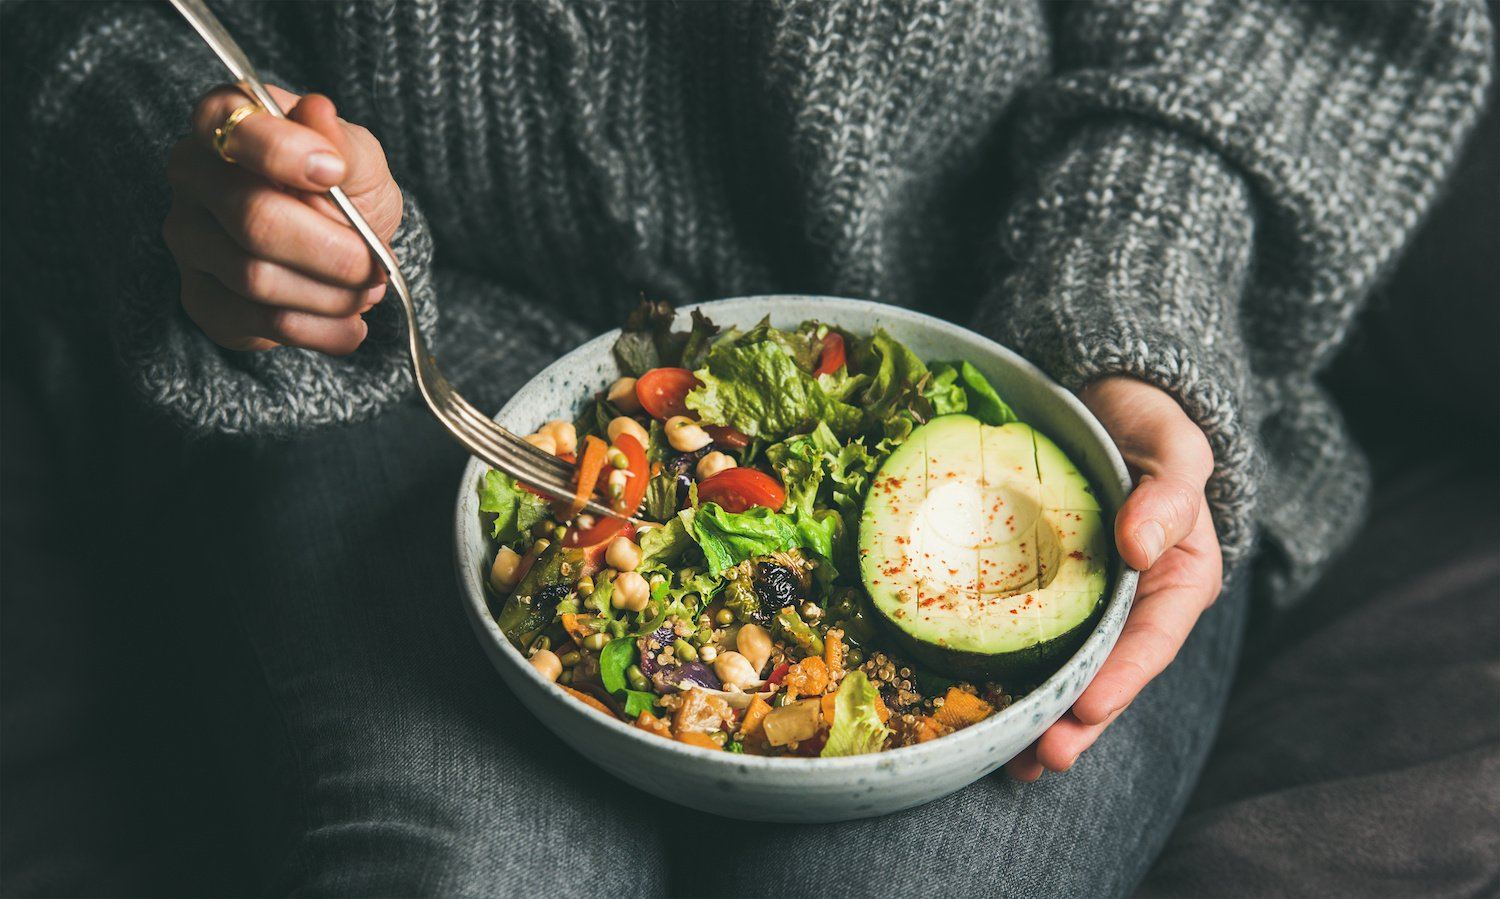 Woman holding a fork and a bowl of healthy food on her lap